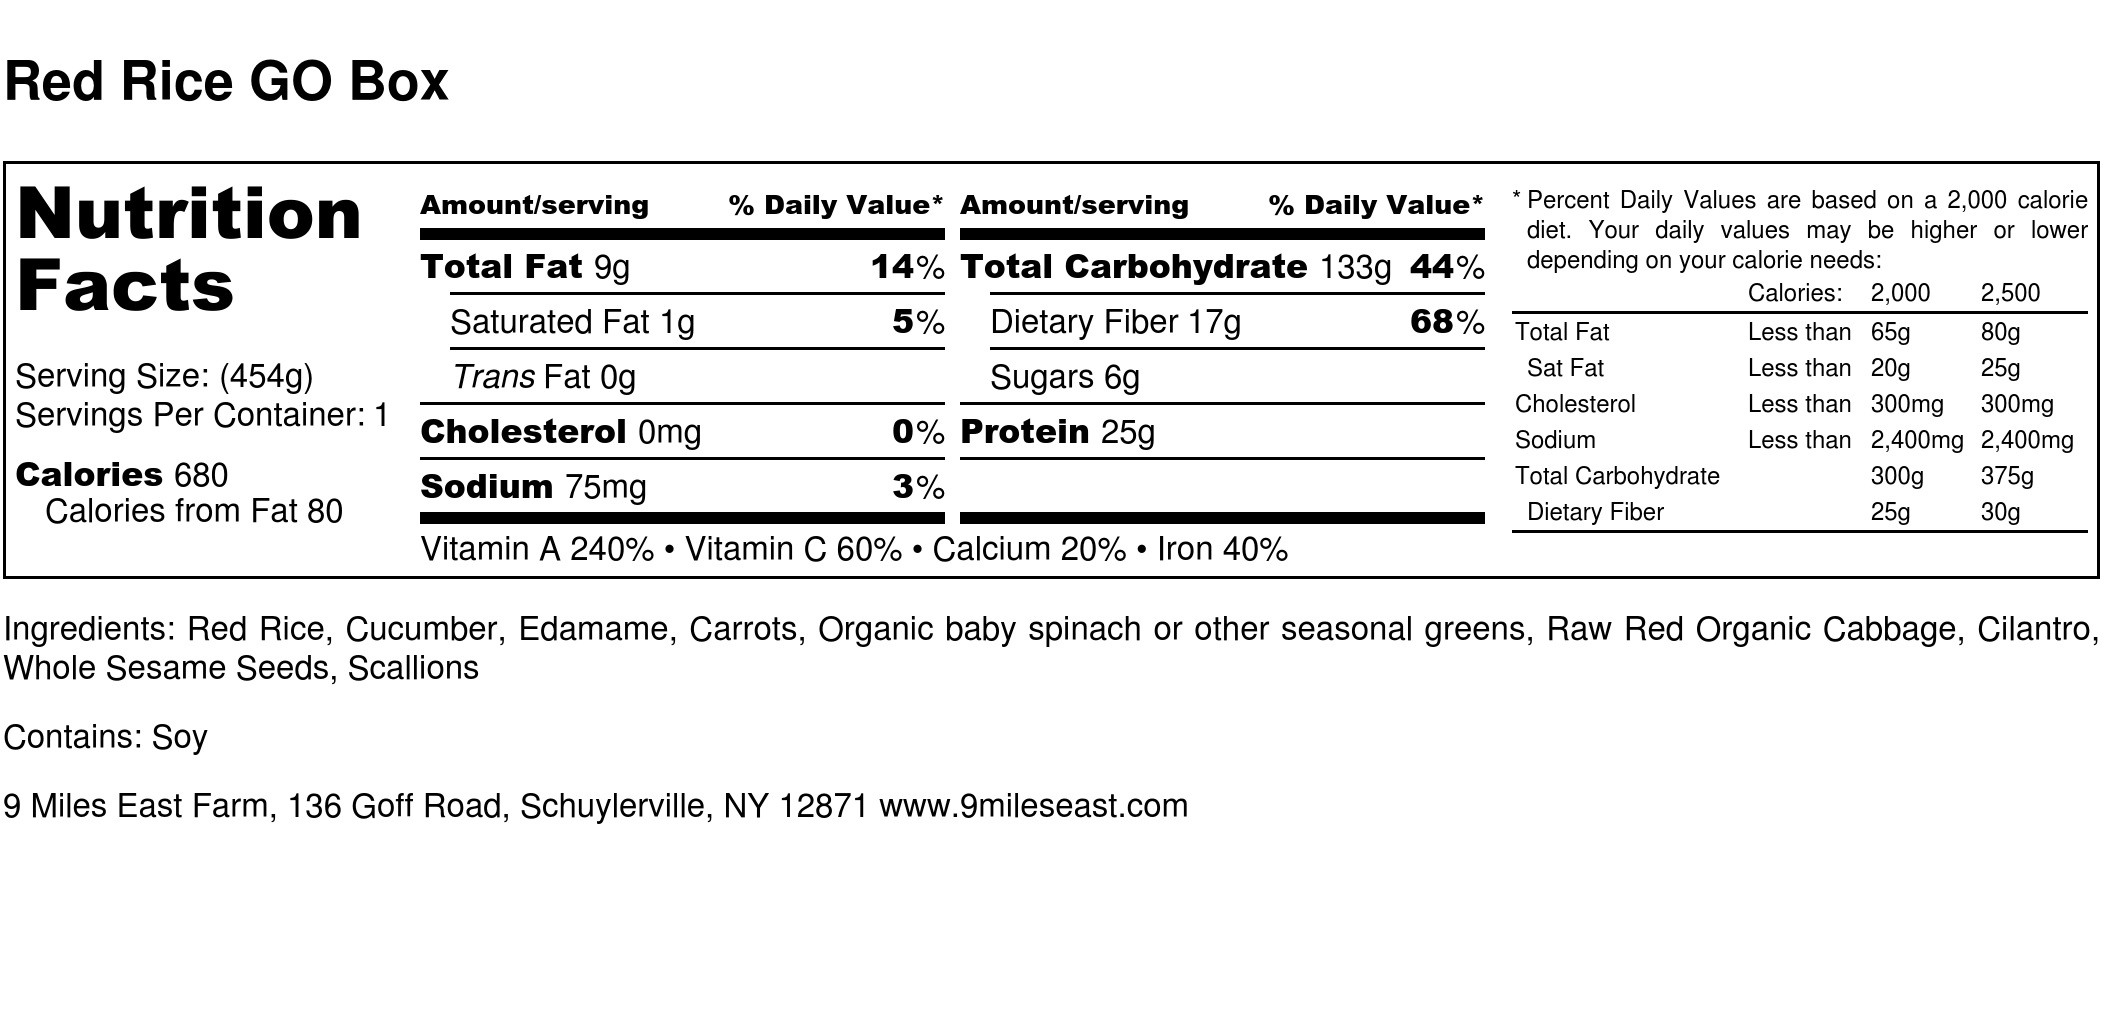 Red Rice GO Box - Nutrition Label.jpg